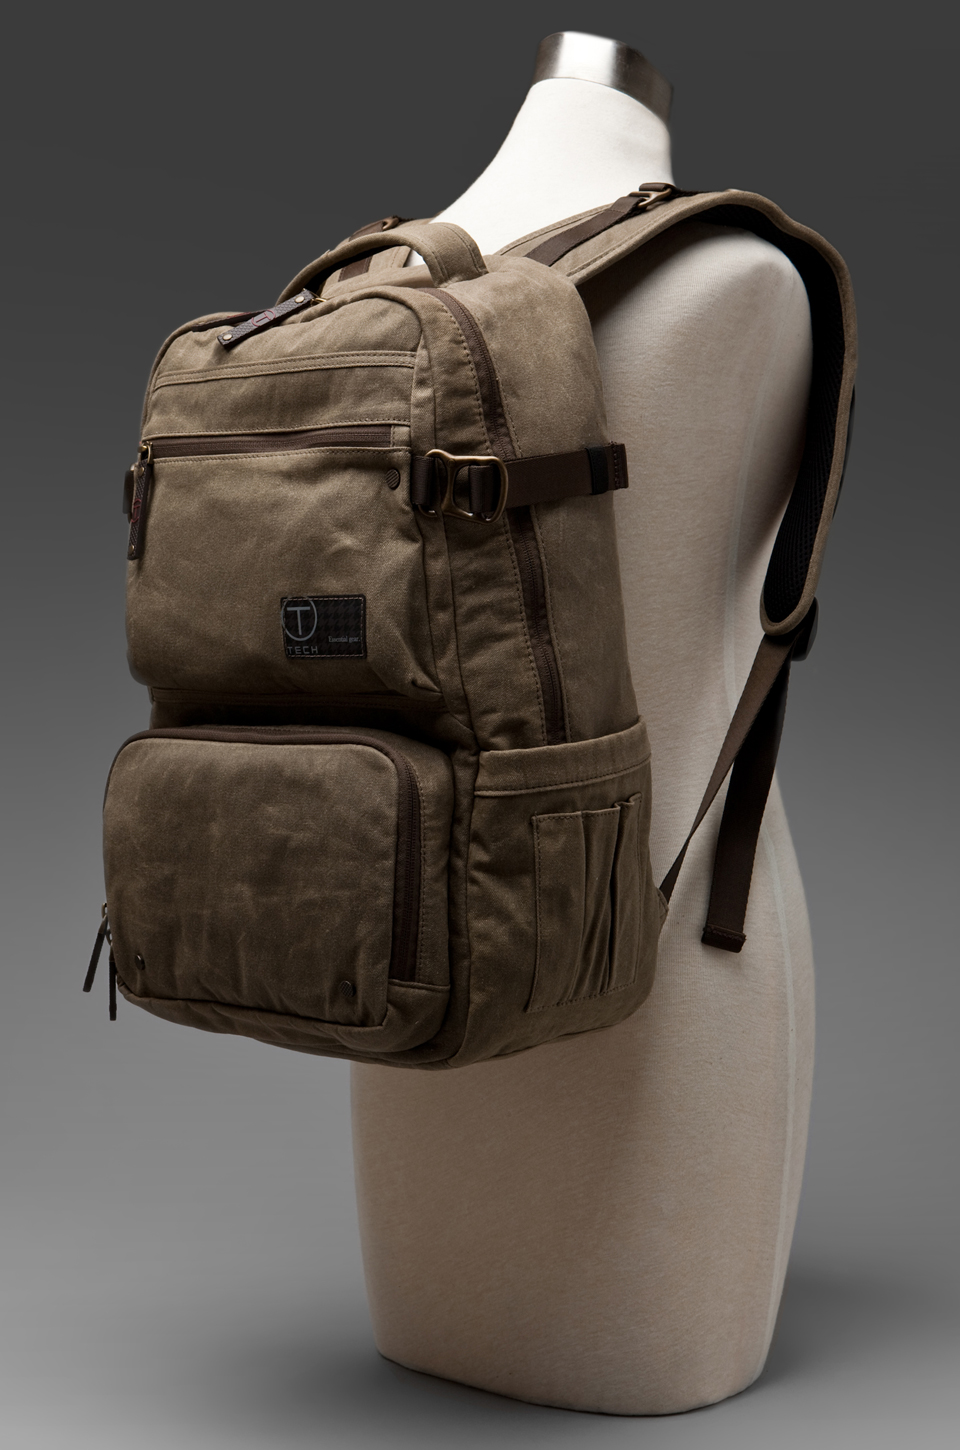 Tumi T-Tech Melville Zip Top Brief Pack in Khaki